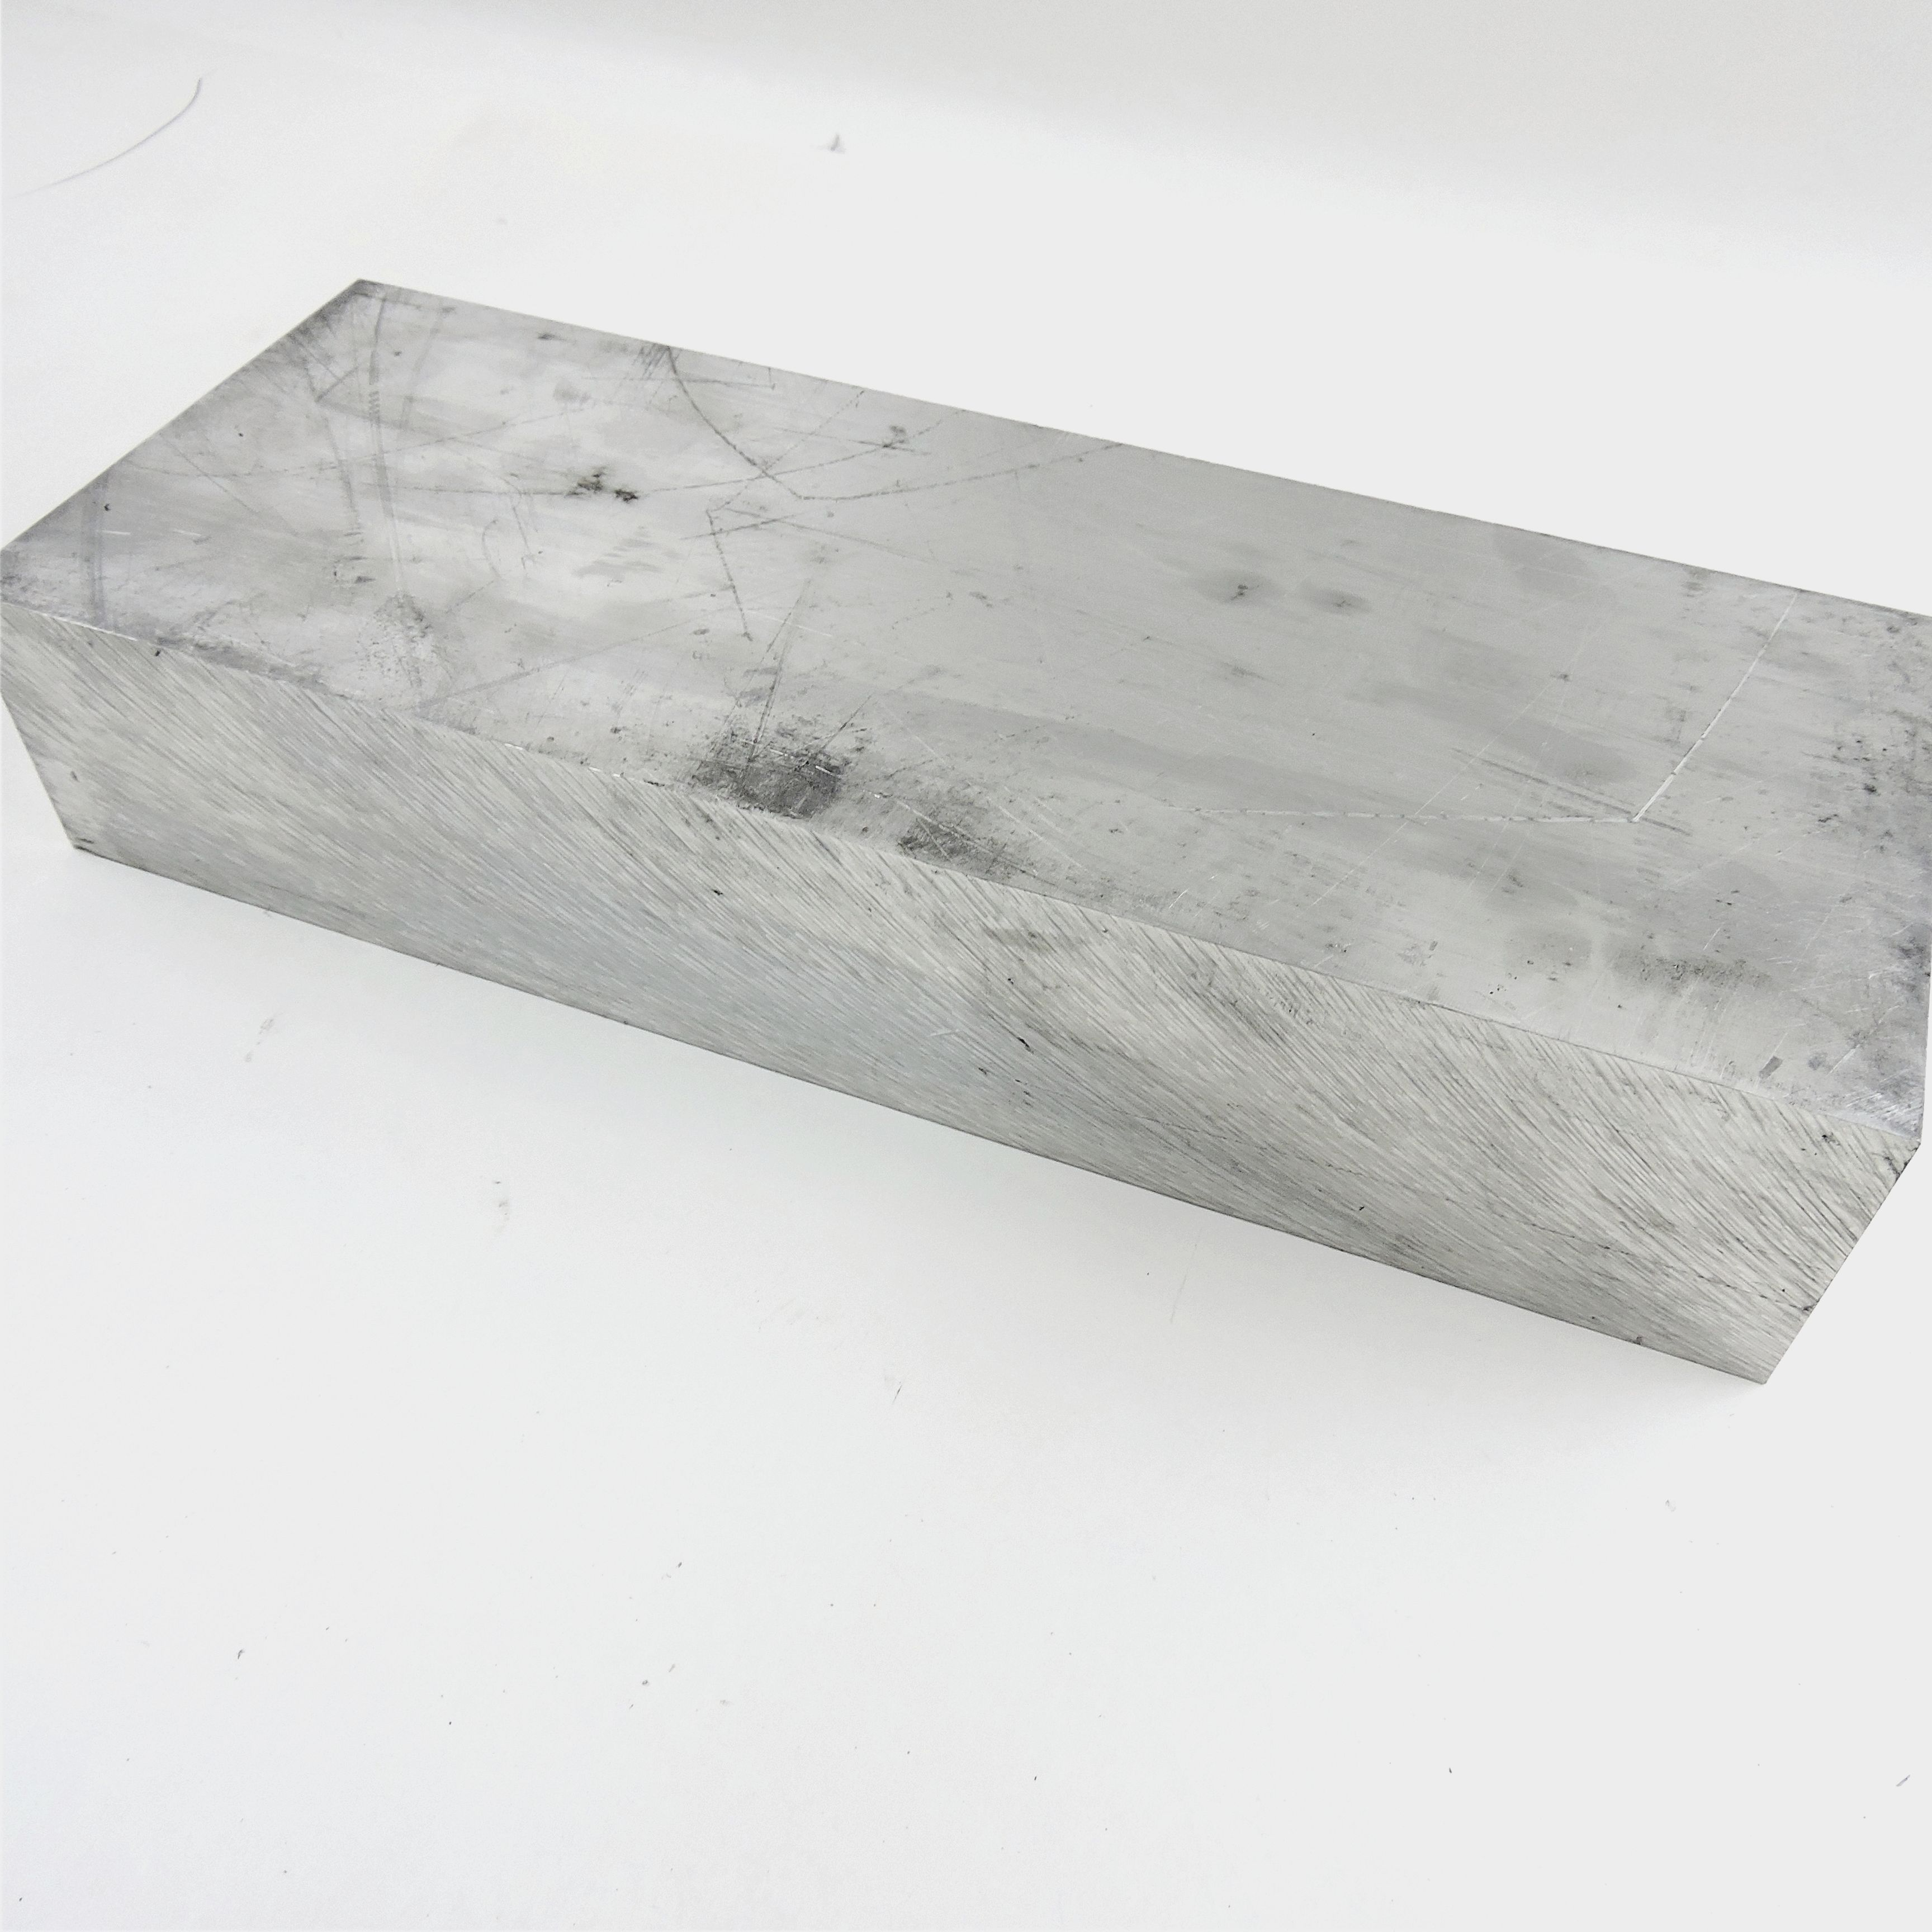 """4/"""" thick 6061 Aluminum PLATE  5.0625/"""" x 6.75/"""" Long Solid Flat Stock sku 122254*"""